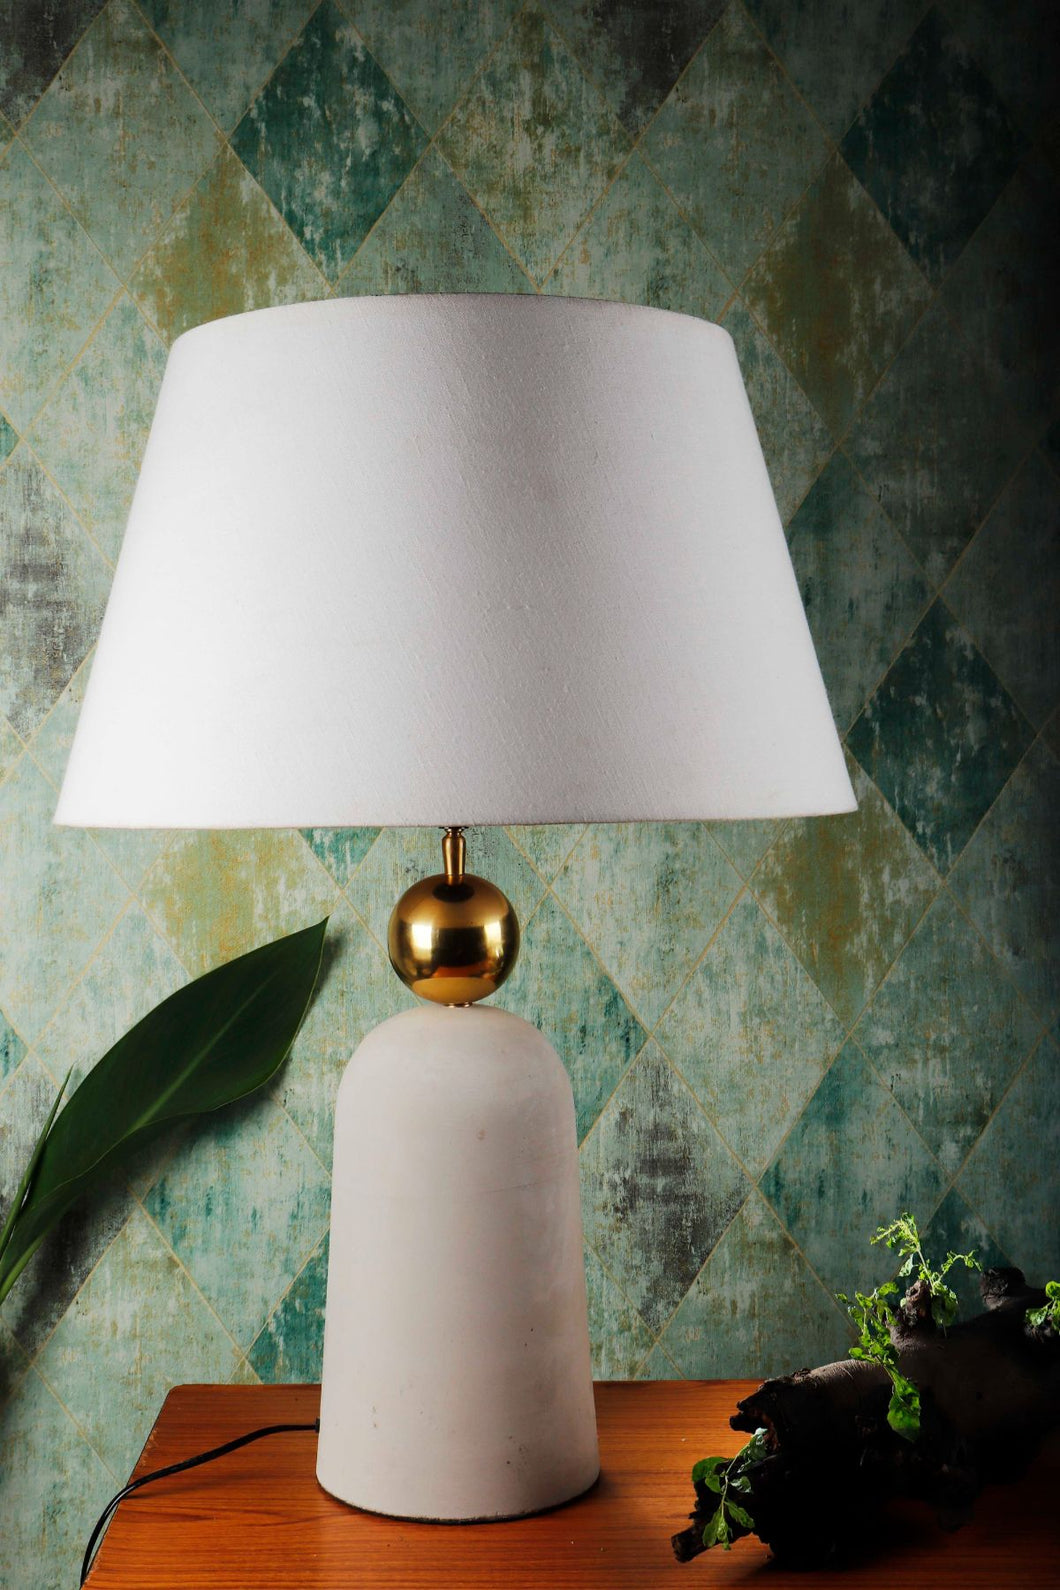 Golden Egg Table Lamp with 2 [WHITE, BEIGE] Tapered Shade